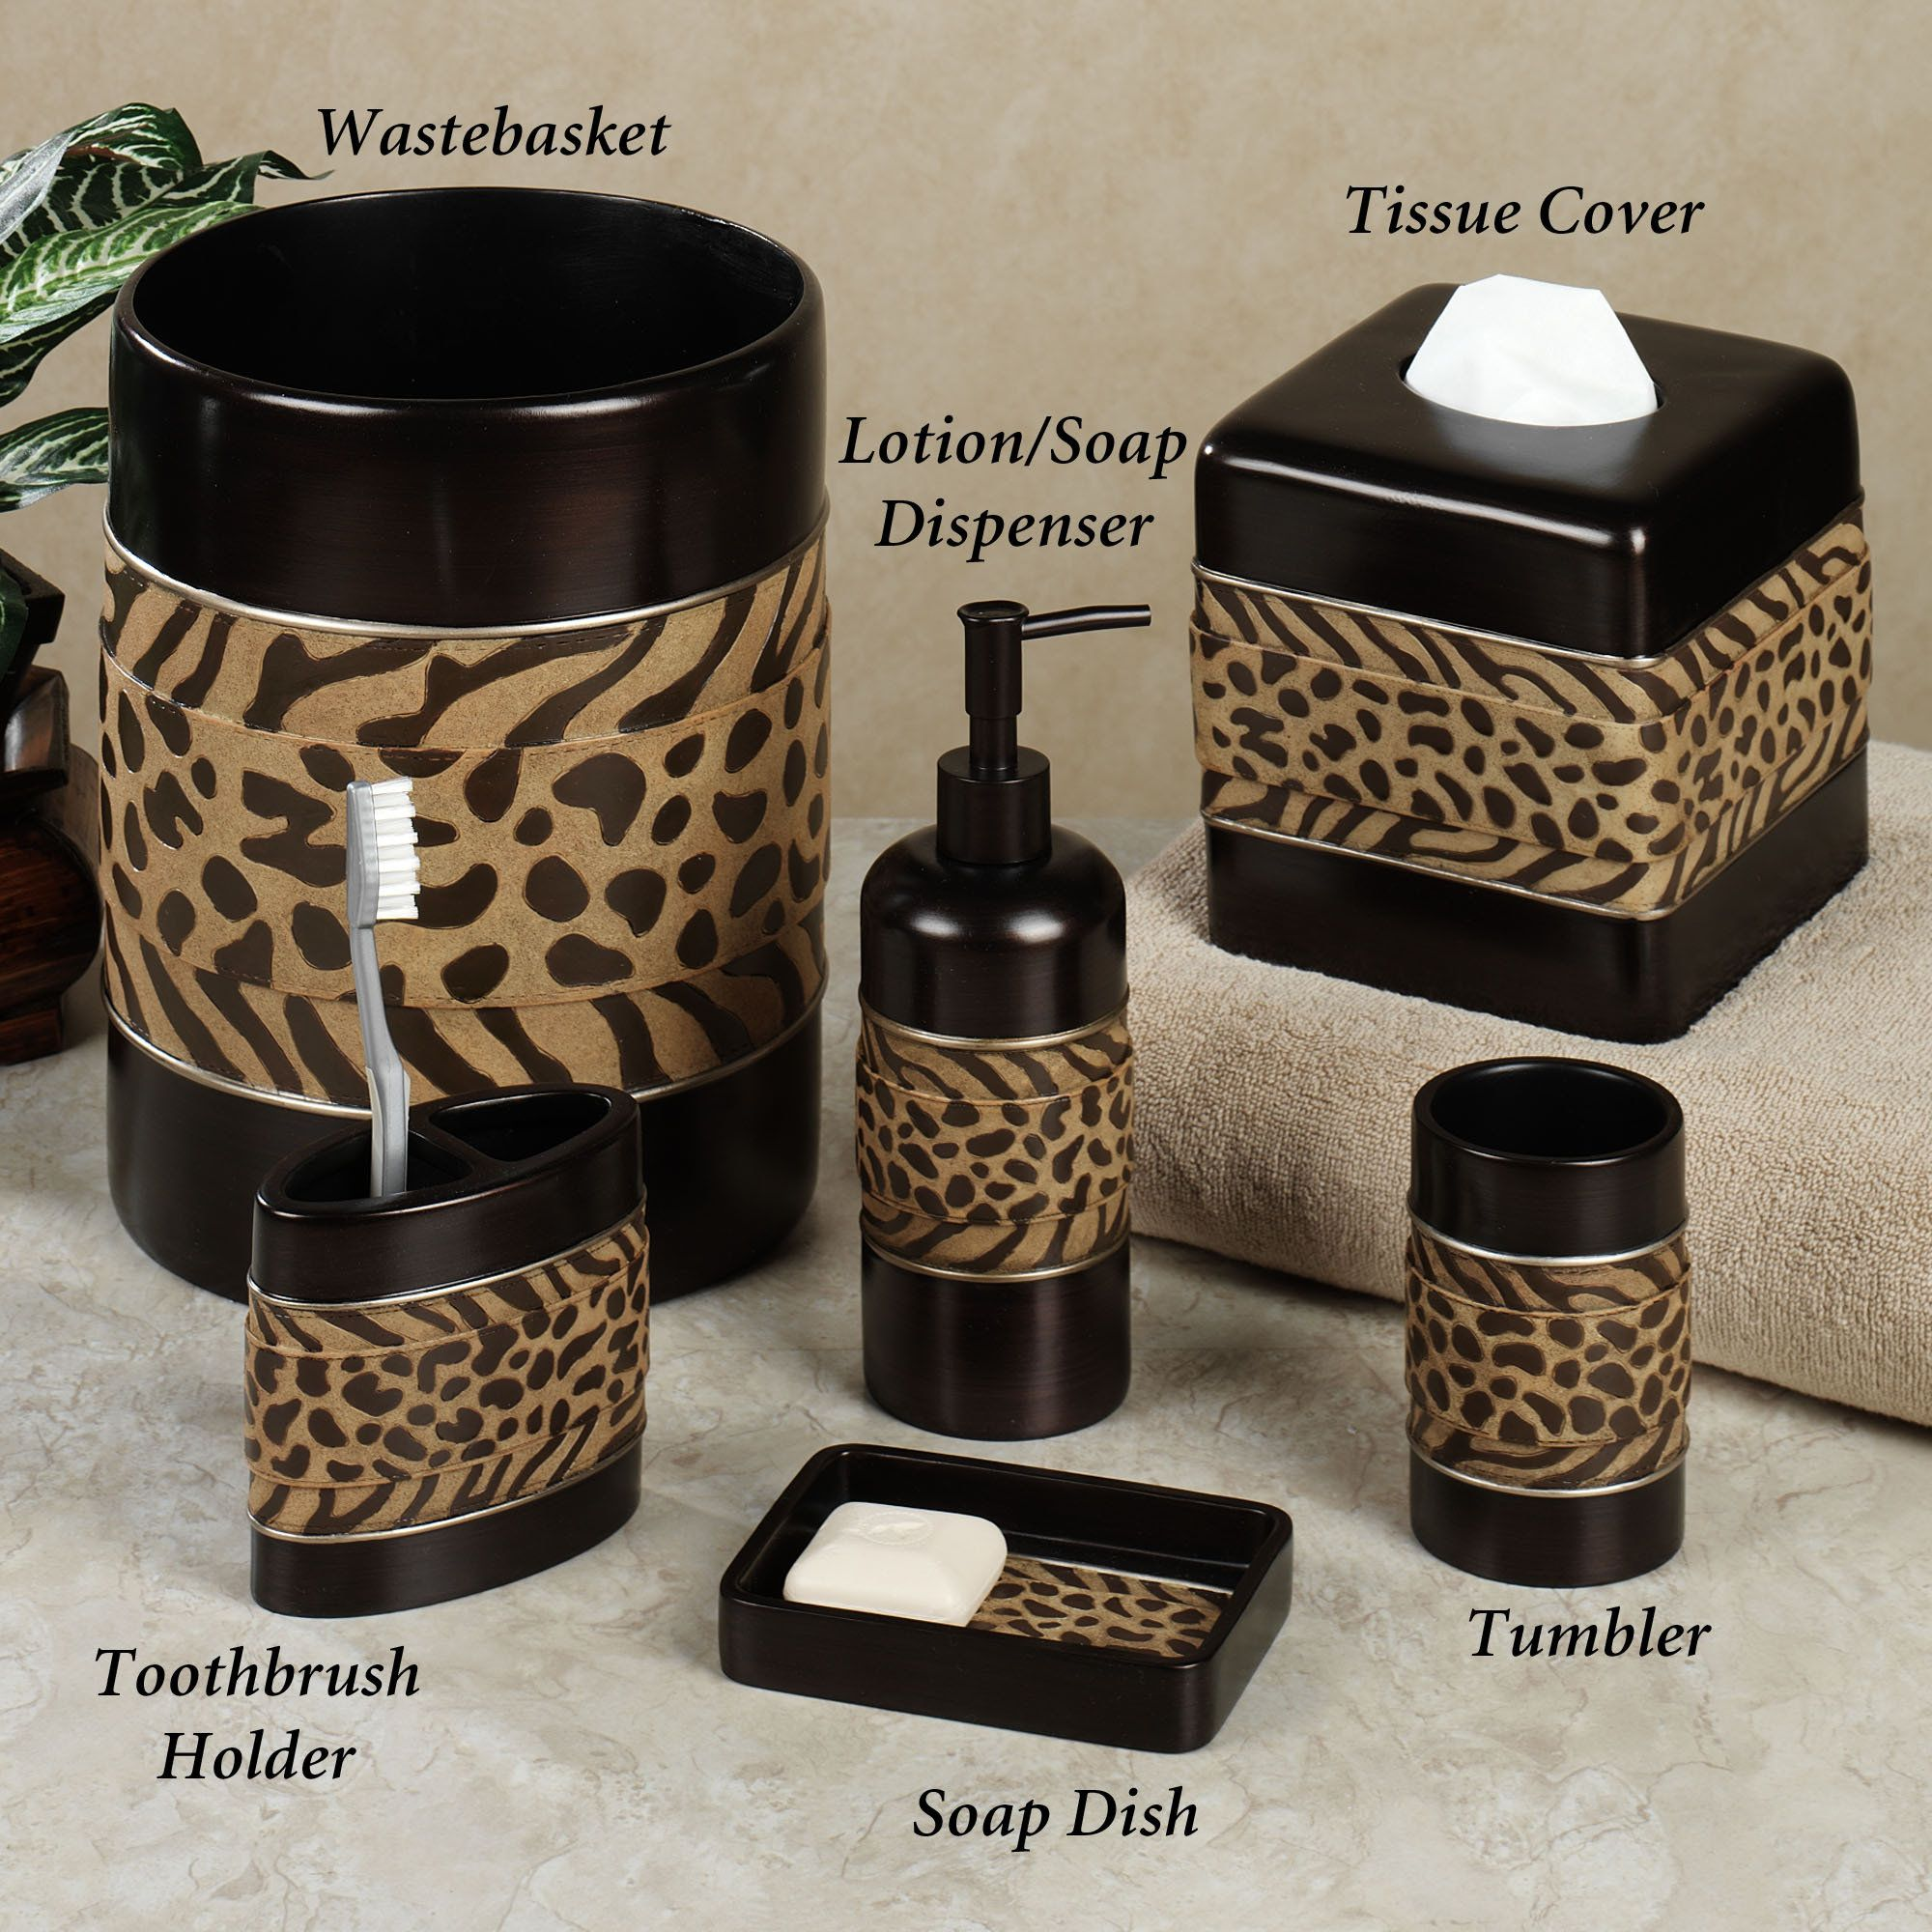 Incroyable The Cheshire Animal Print Bath Accessories Feature The Primal Beauty That  These Natural Designs Have Always Evoked. Cheetah And Zebra Pattern Bands  Add A.